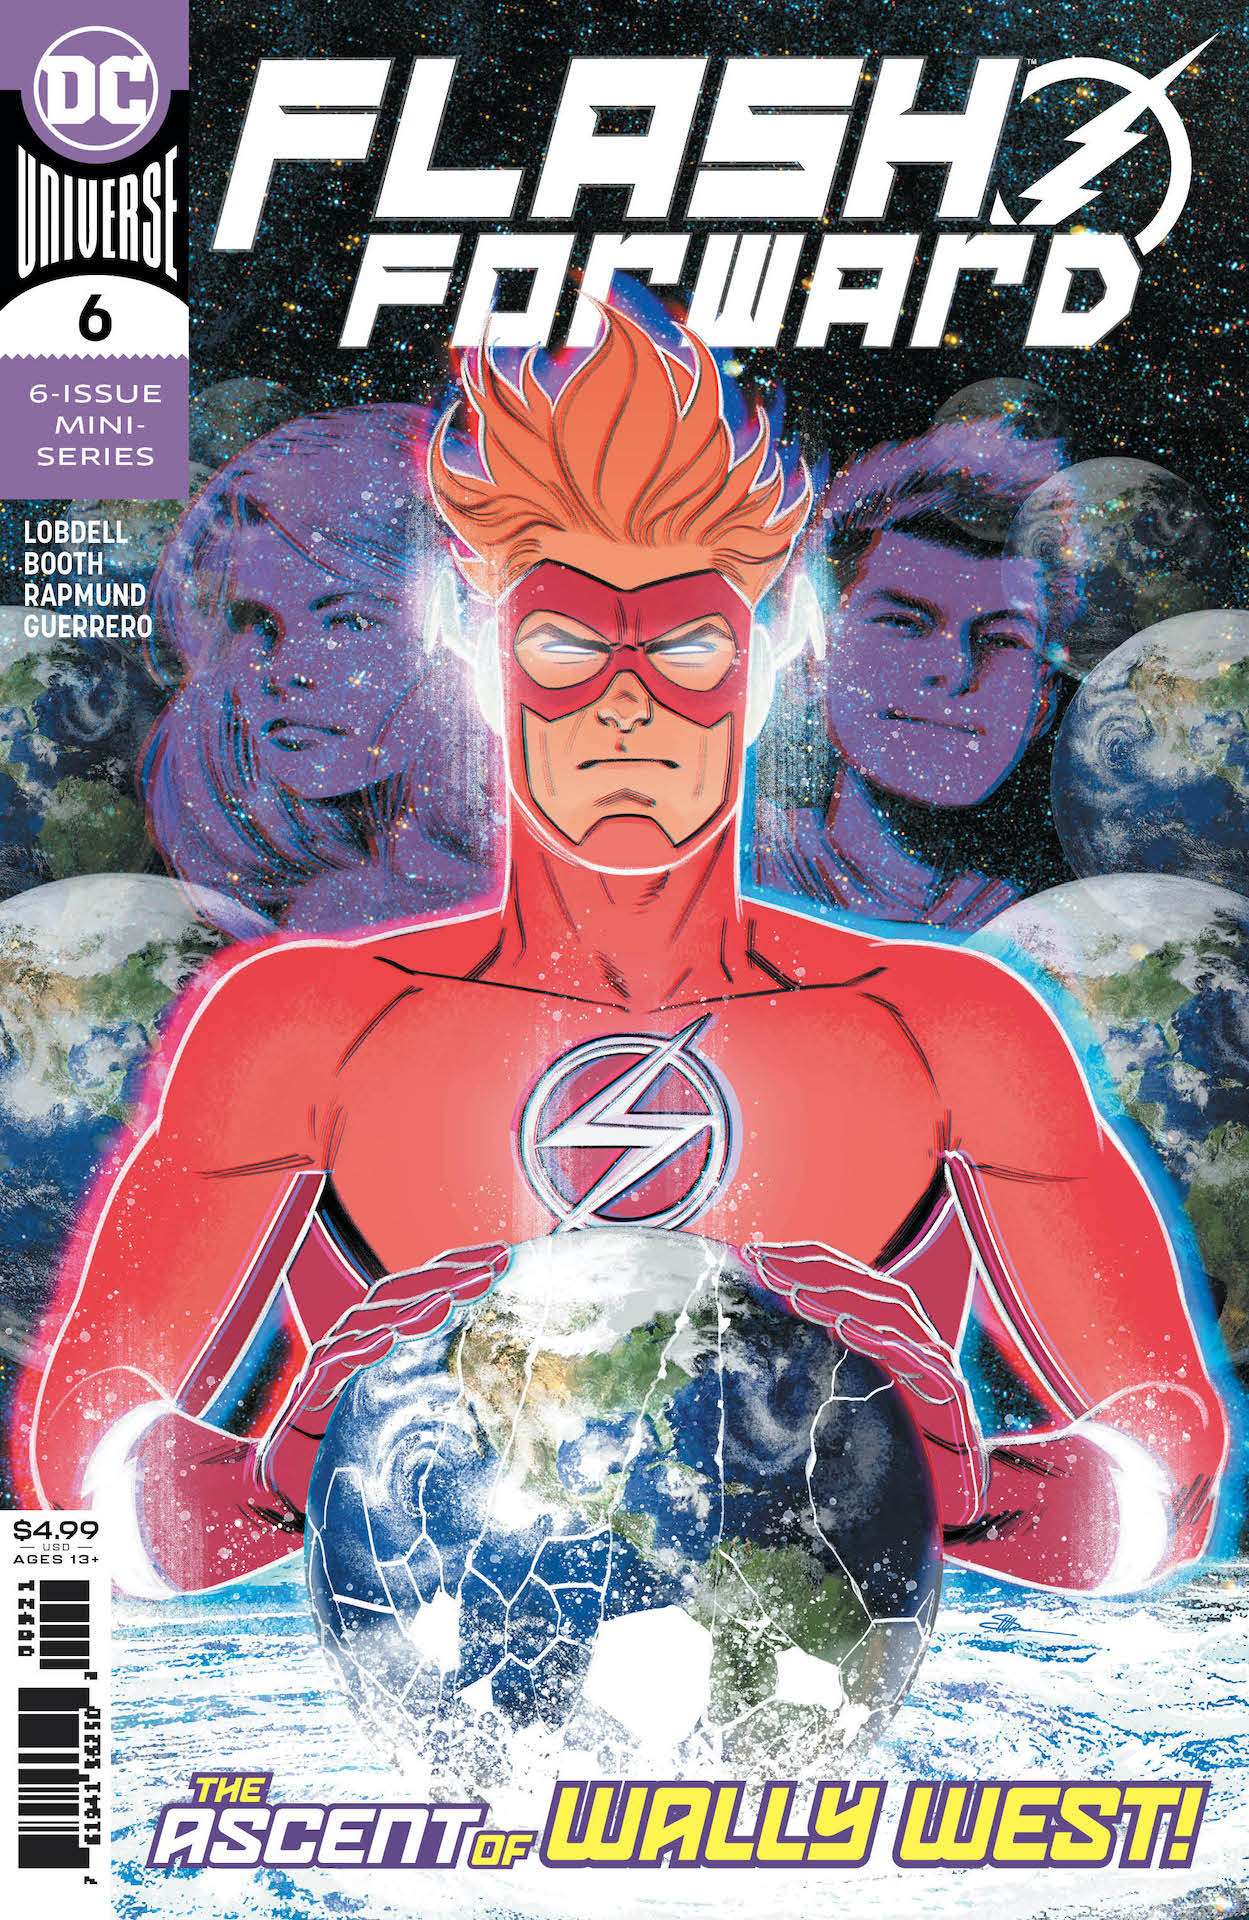 Wally West must make the toughest choice of his life: save the day, or save his family.